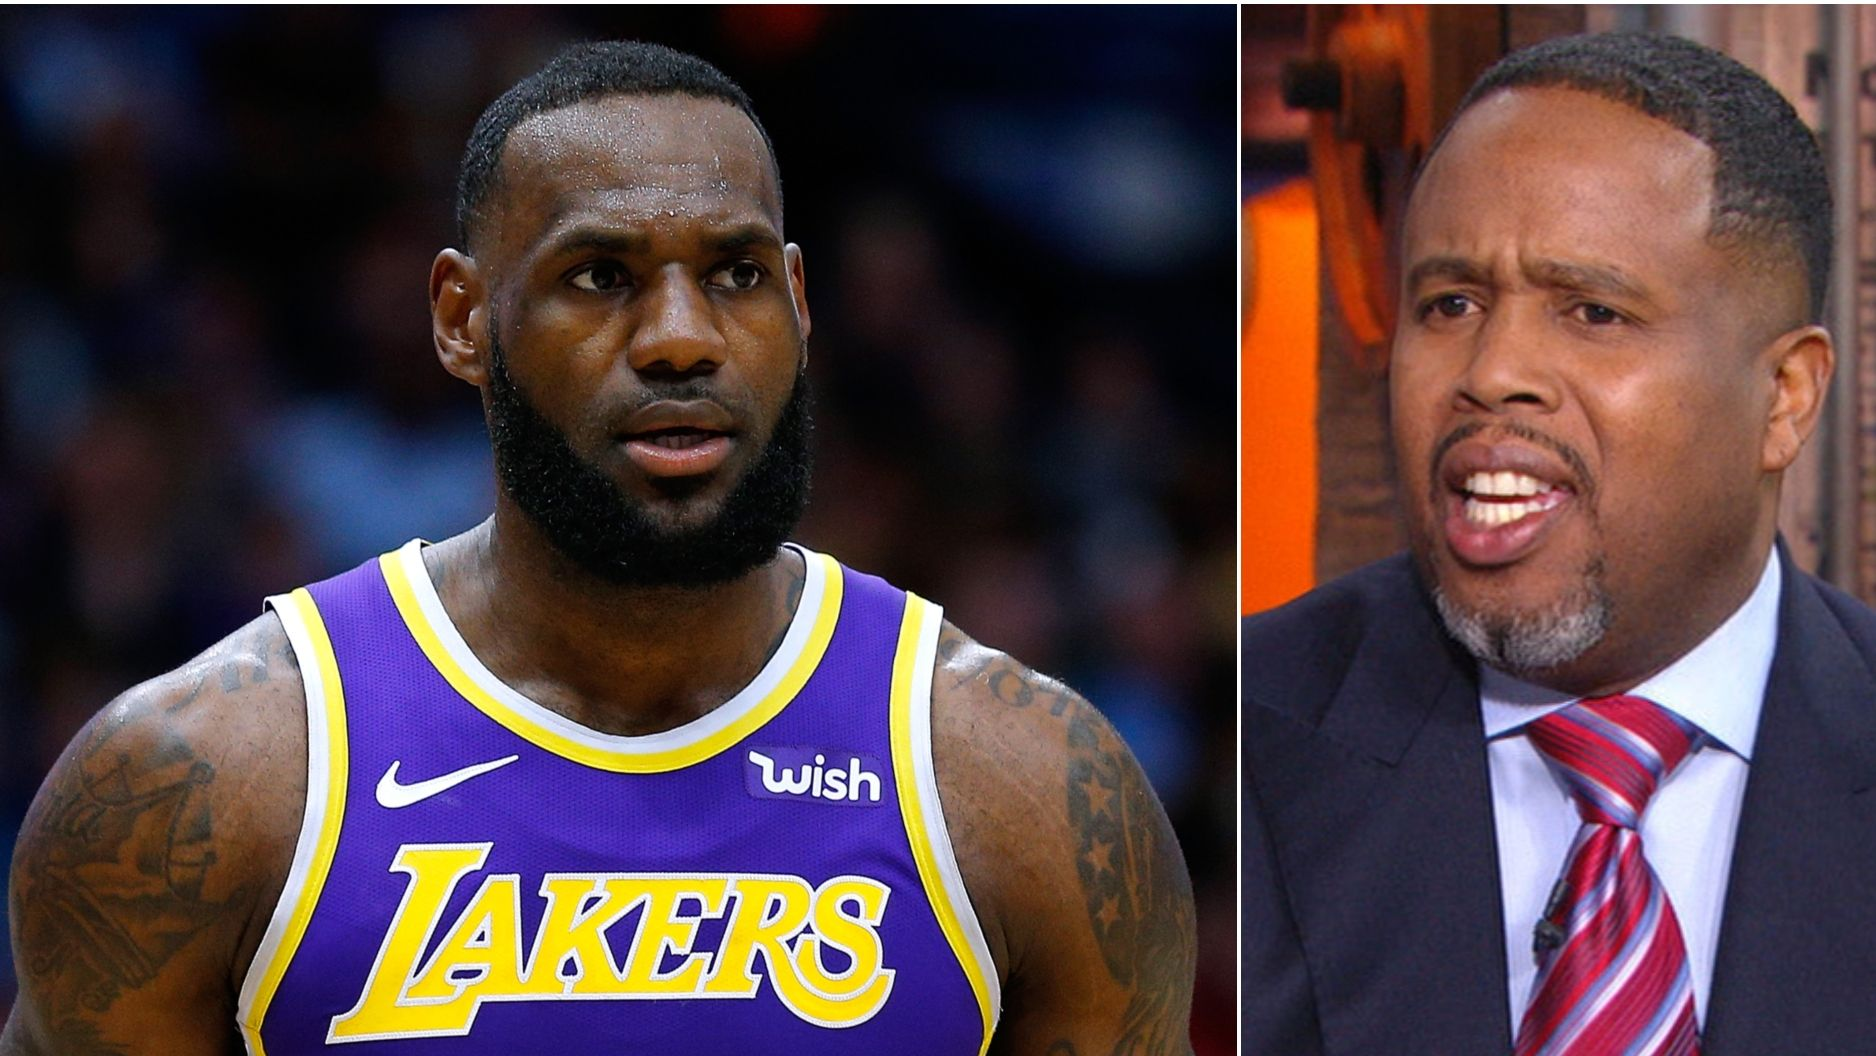 Jones calls out LeBron critics: 'Stop it'